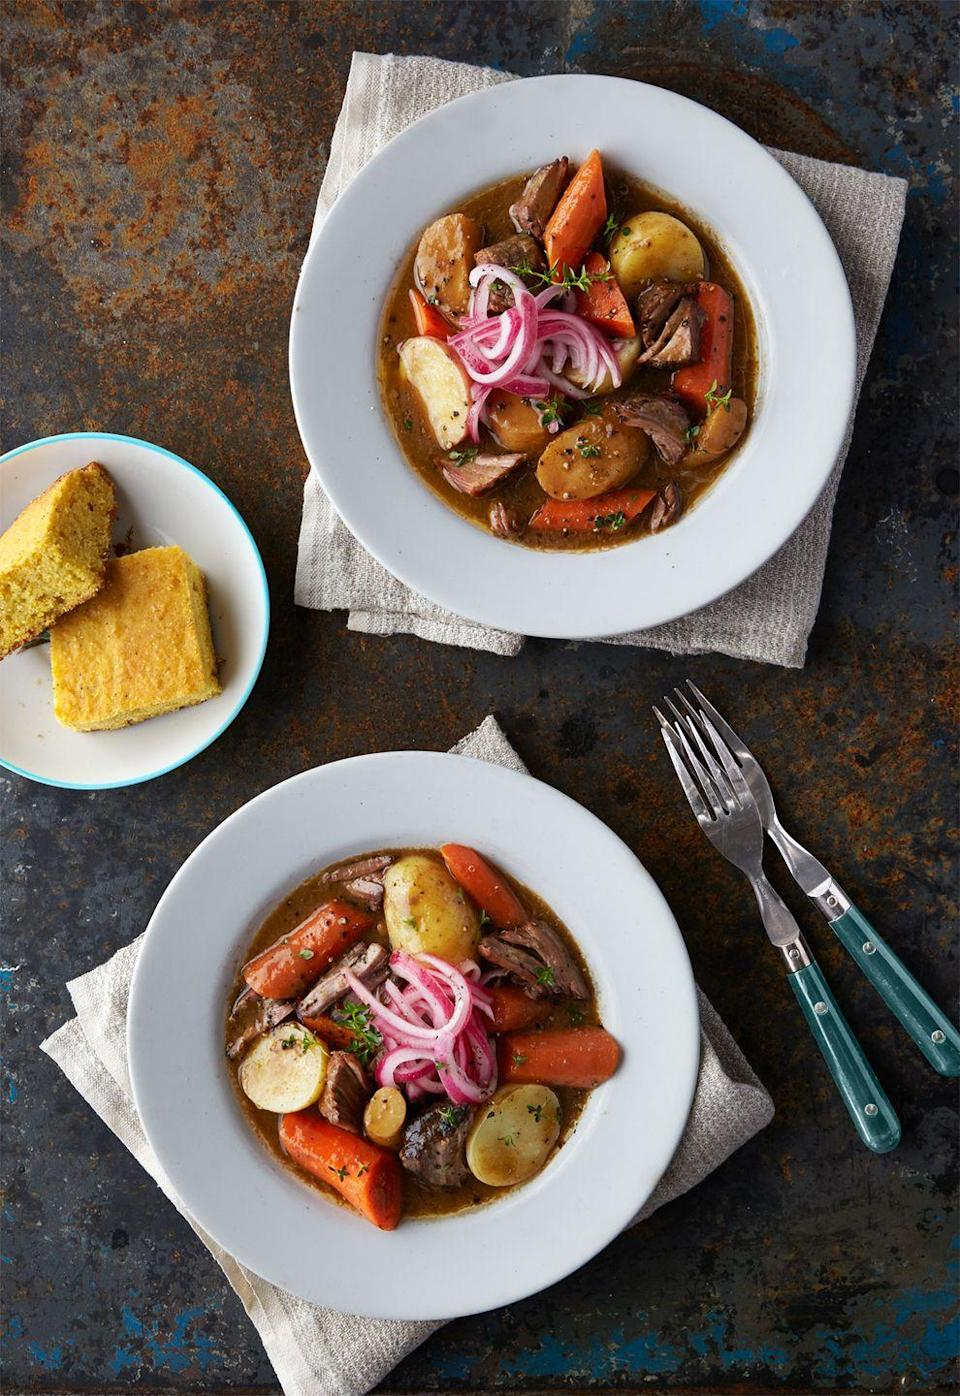 "<p>And you have to serve it with cornbread on the side.</p><p>Get the recipe from <a href=""https://www.delish.com/cooking/recipe-ideas/recipes/a44289/red-eye-brisket-stew-recipe/"" rel=""nofollow noopener"" target=""_blank"" data-ylk=""slk:Delish"" class=""link rapid-noclick-resp"">Delish</a>.</p>"